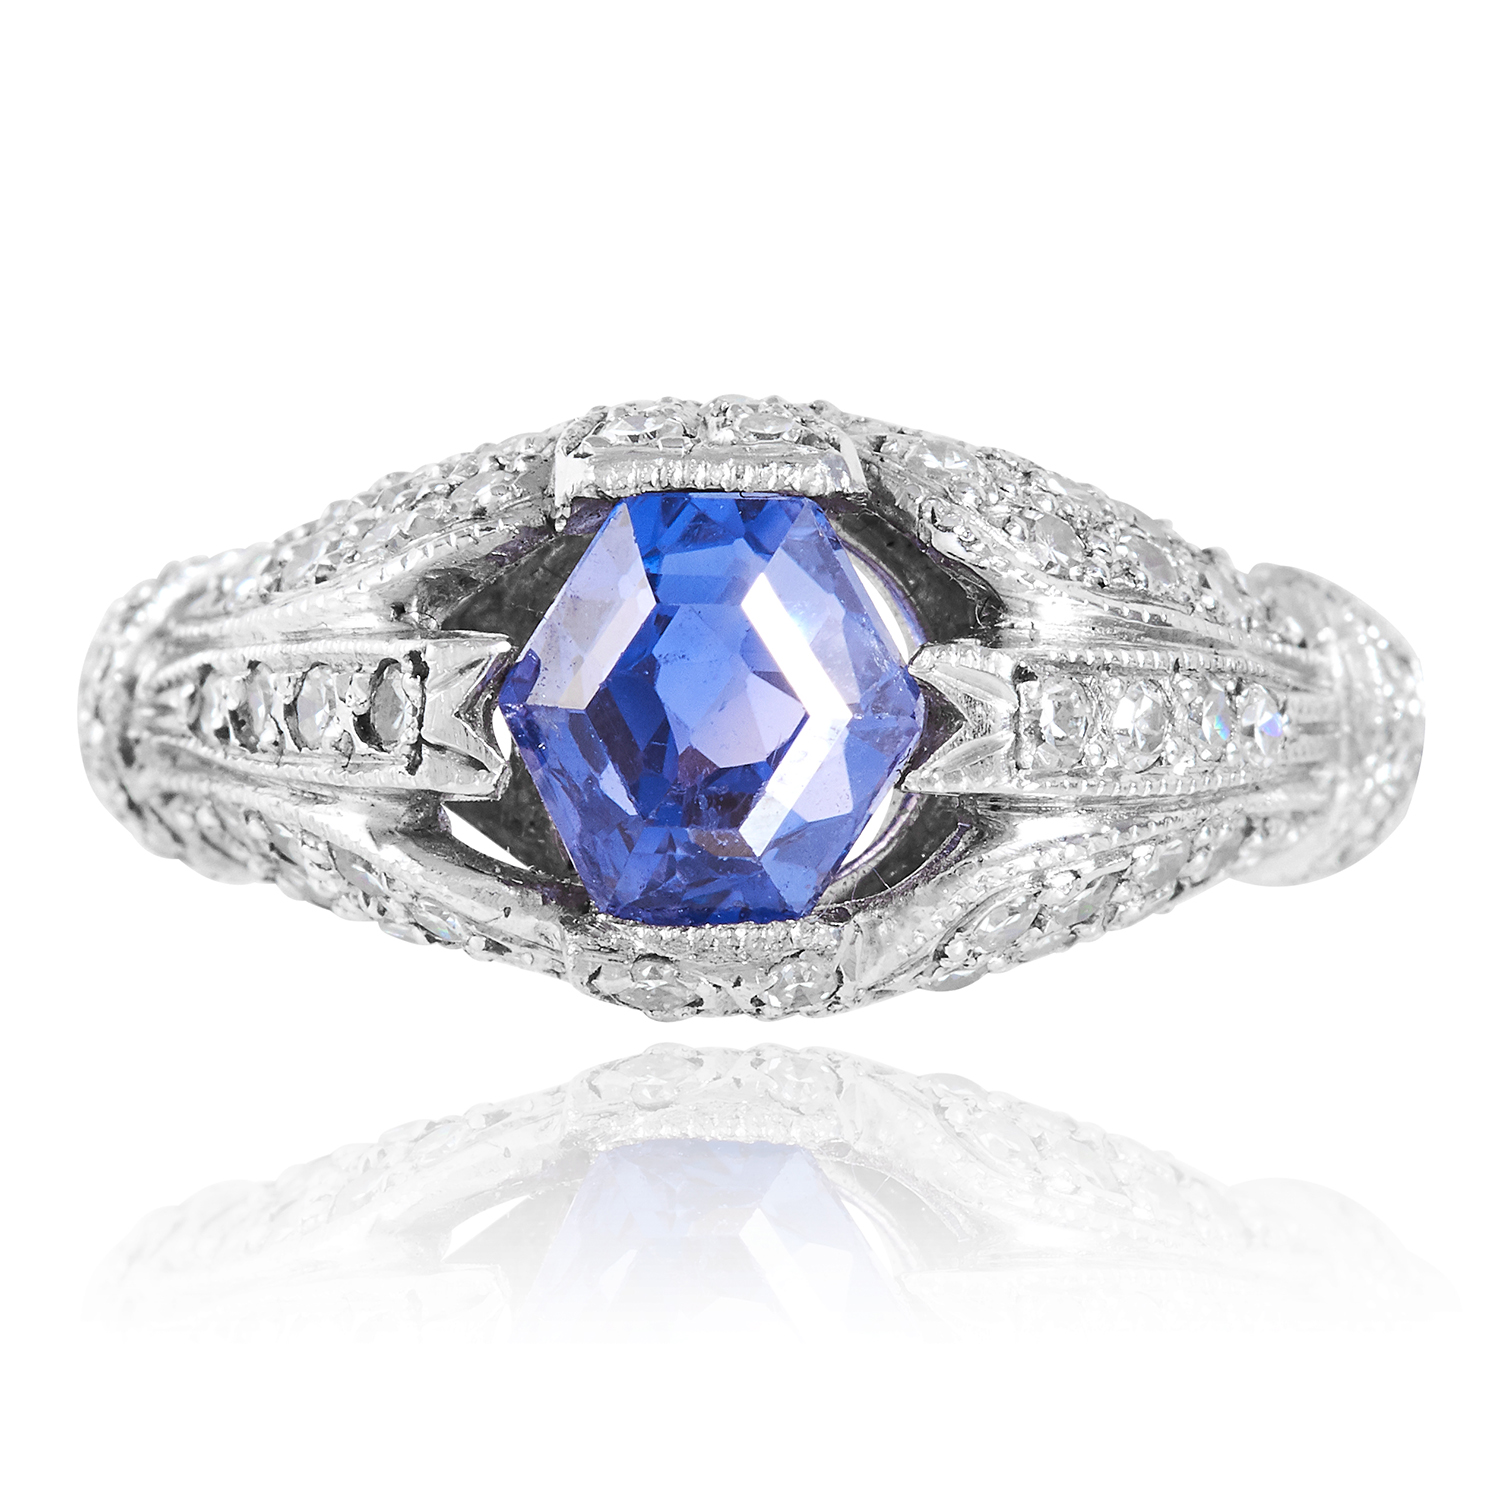 Los 29 - A 1.98 CARAT SAPPHIRE AND DIAMOND DRESS RING in platinum, set with a hexagonal cut sapphire of